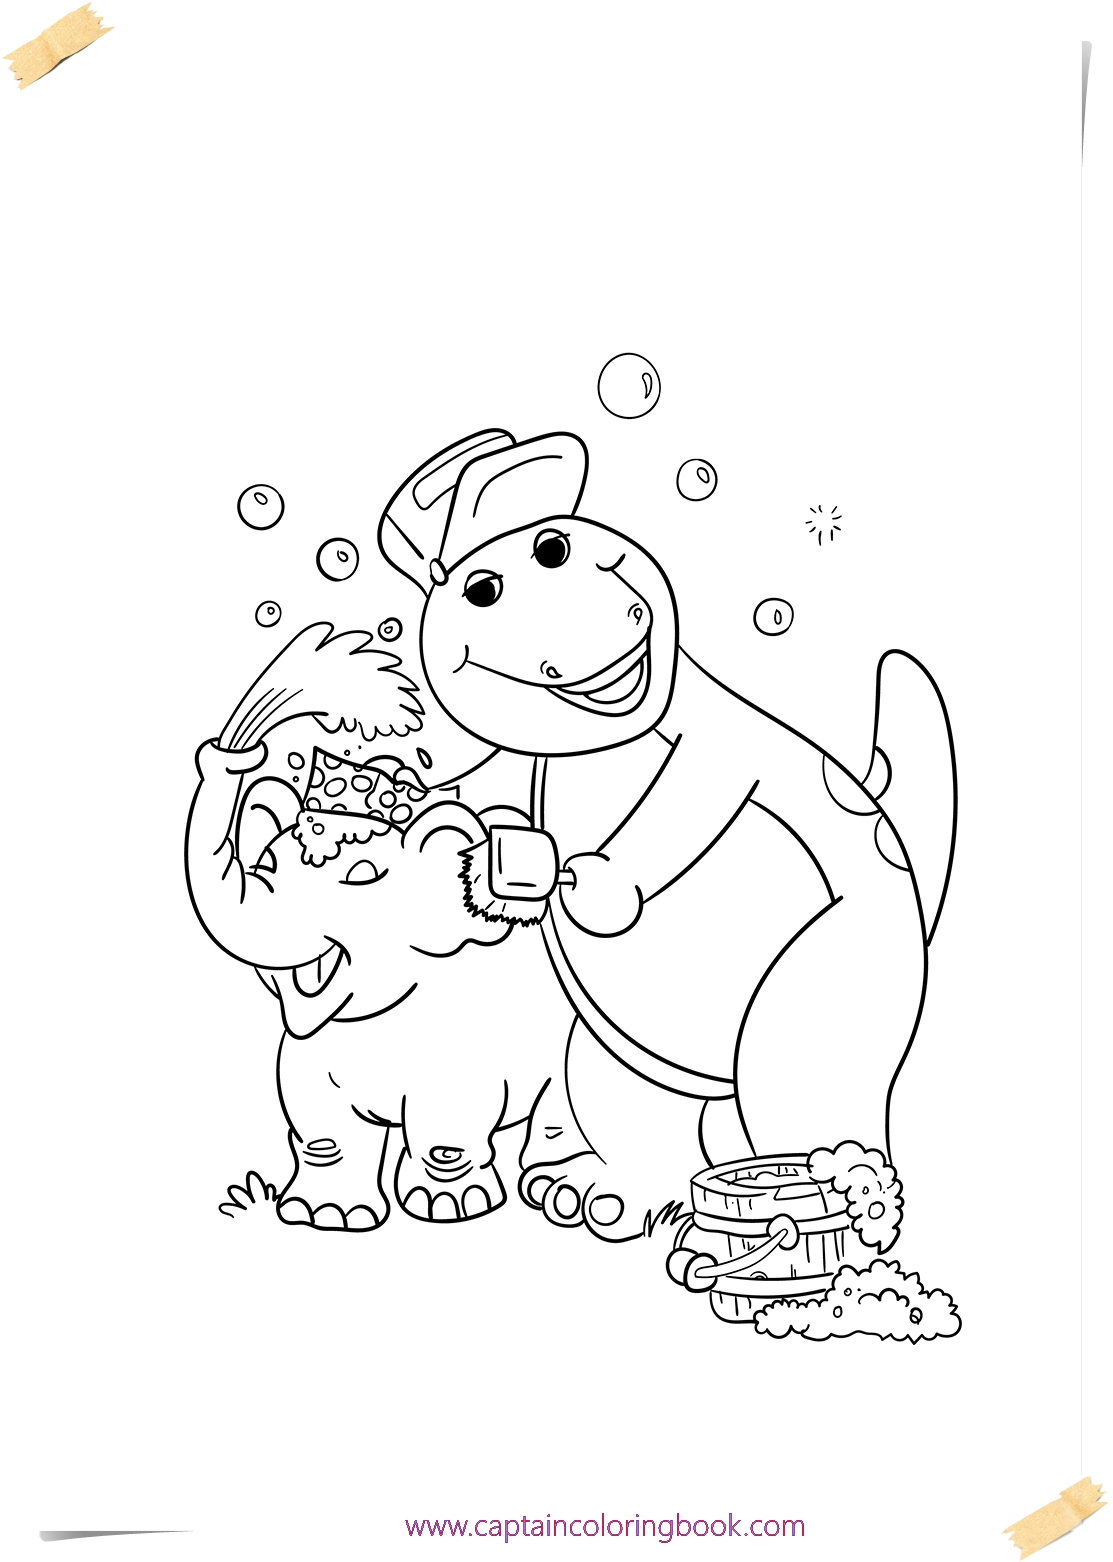 Barney Coloring Pages coloring page printable Coloring Page